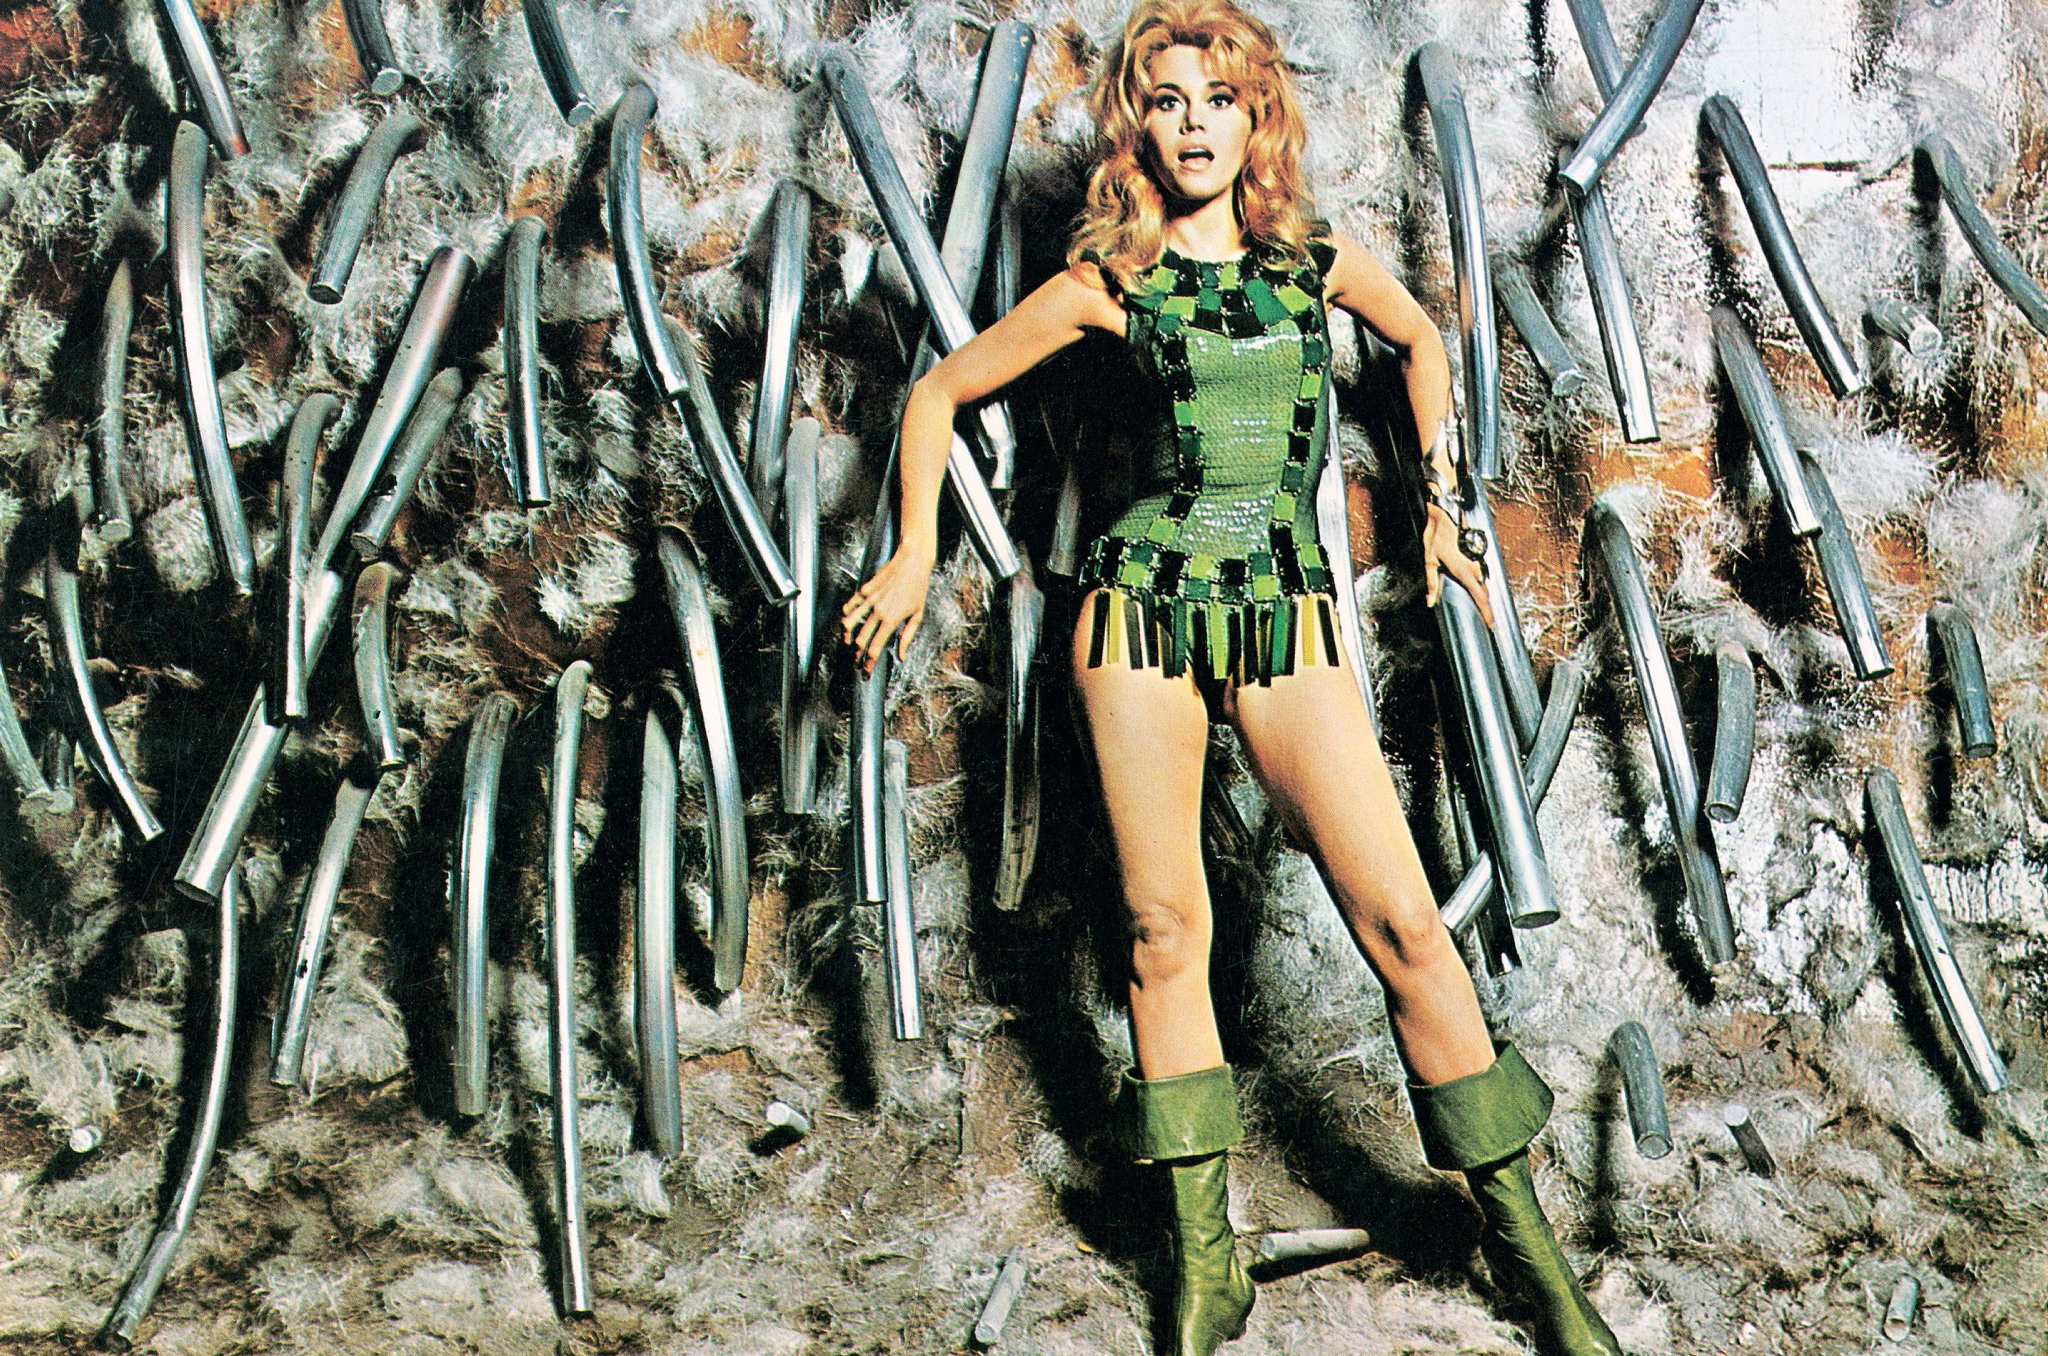 Sci-fi movie: Barbarella